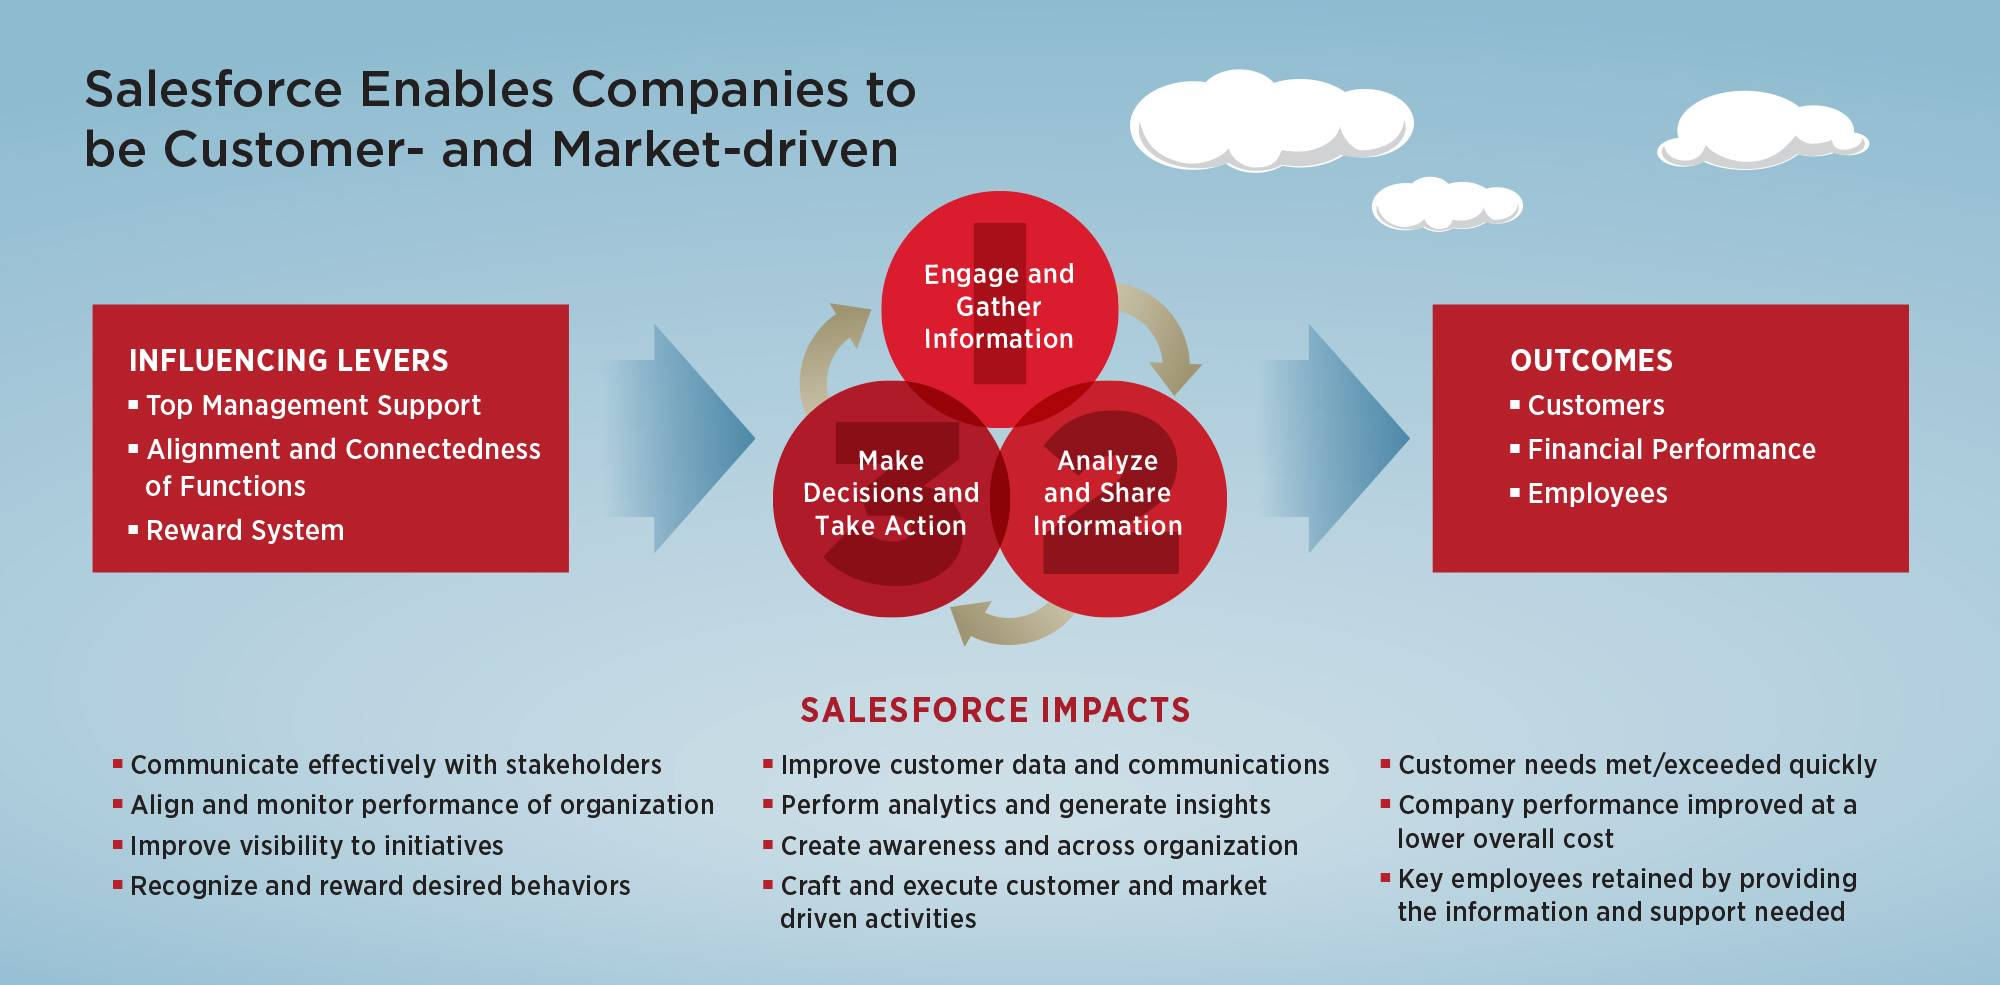 Salesforce enables companies to be customer- and market-driven